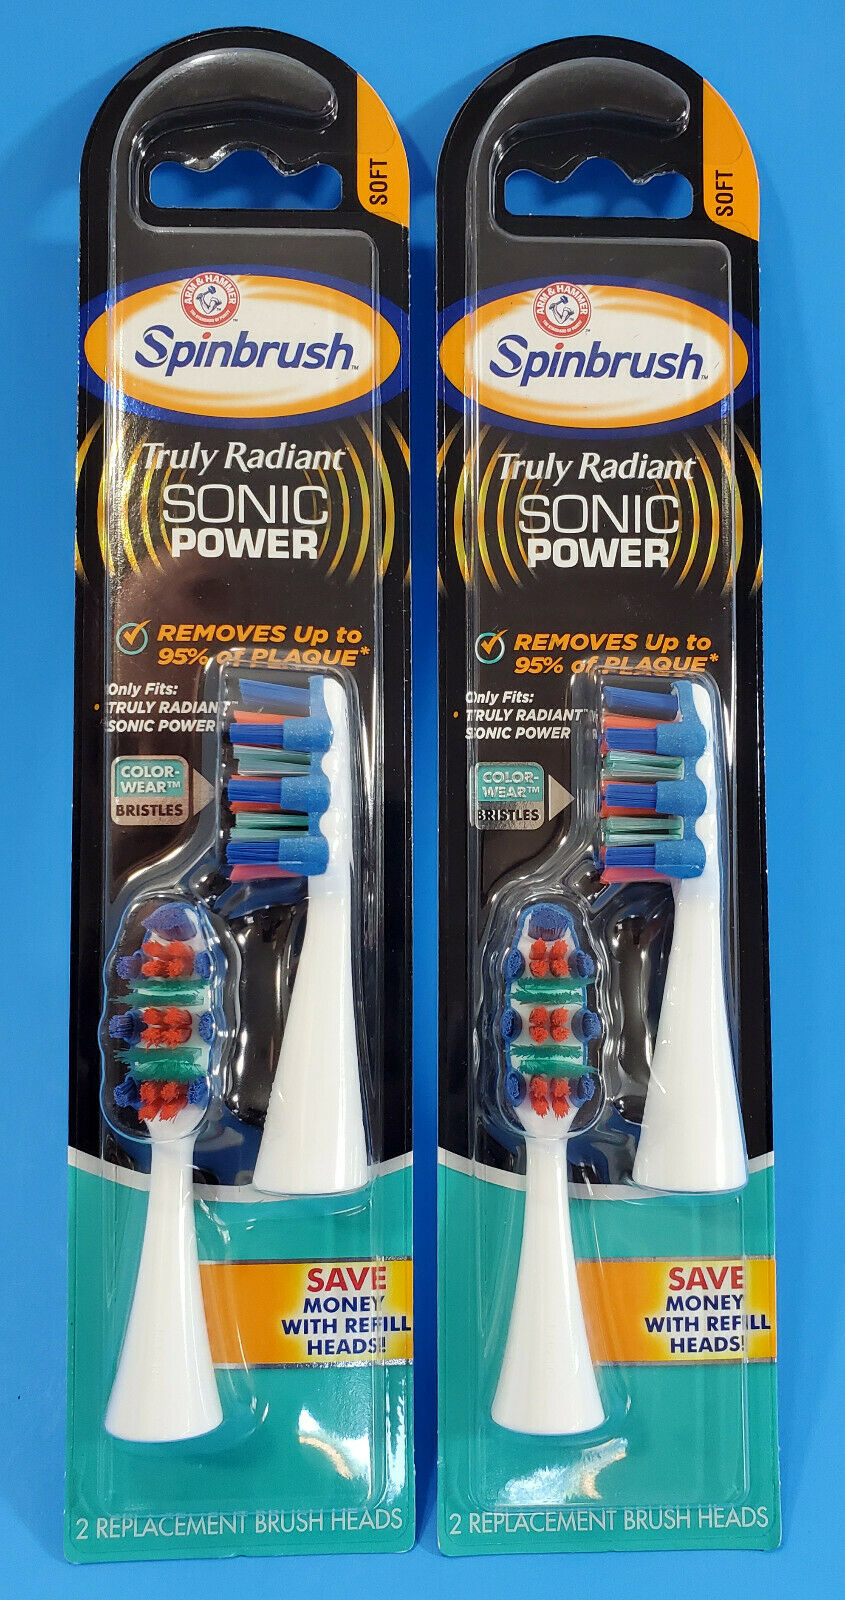 Arm and Hammer SpinBrush Powered Toothbrush Pro Clean Sonic